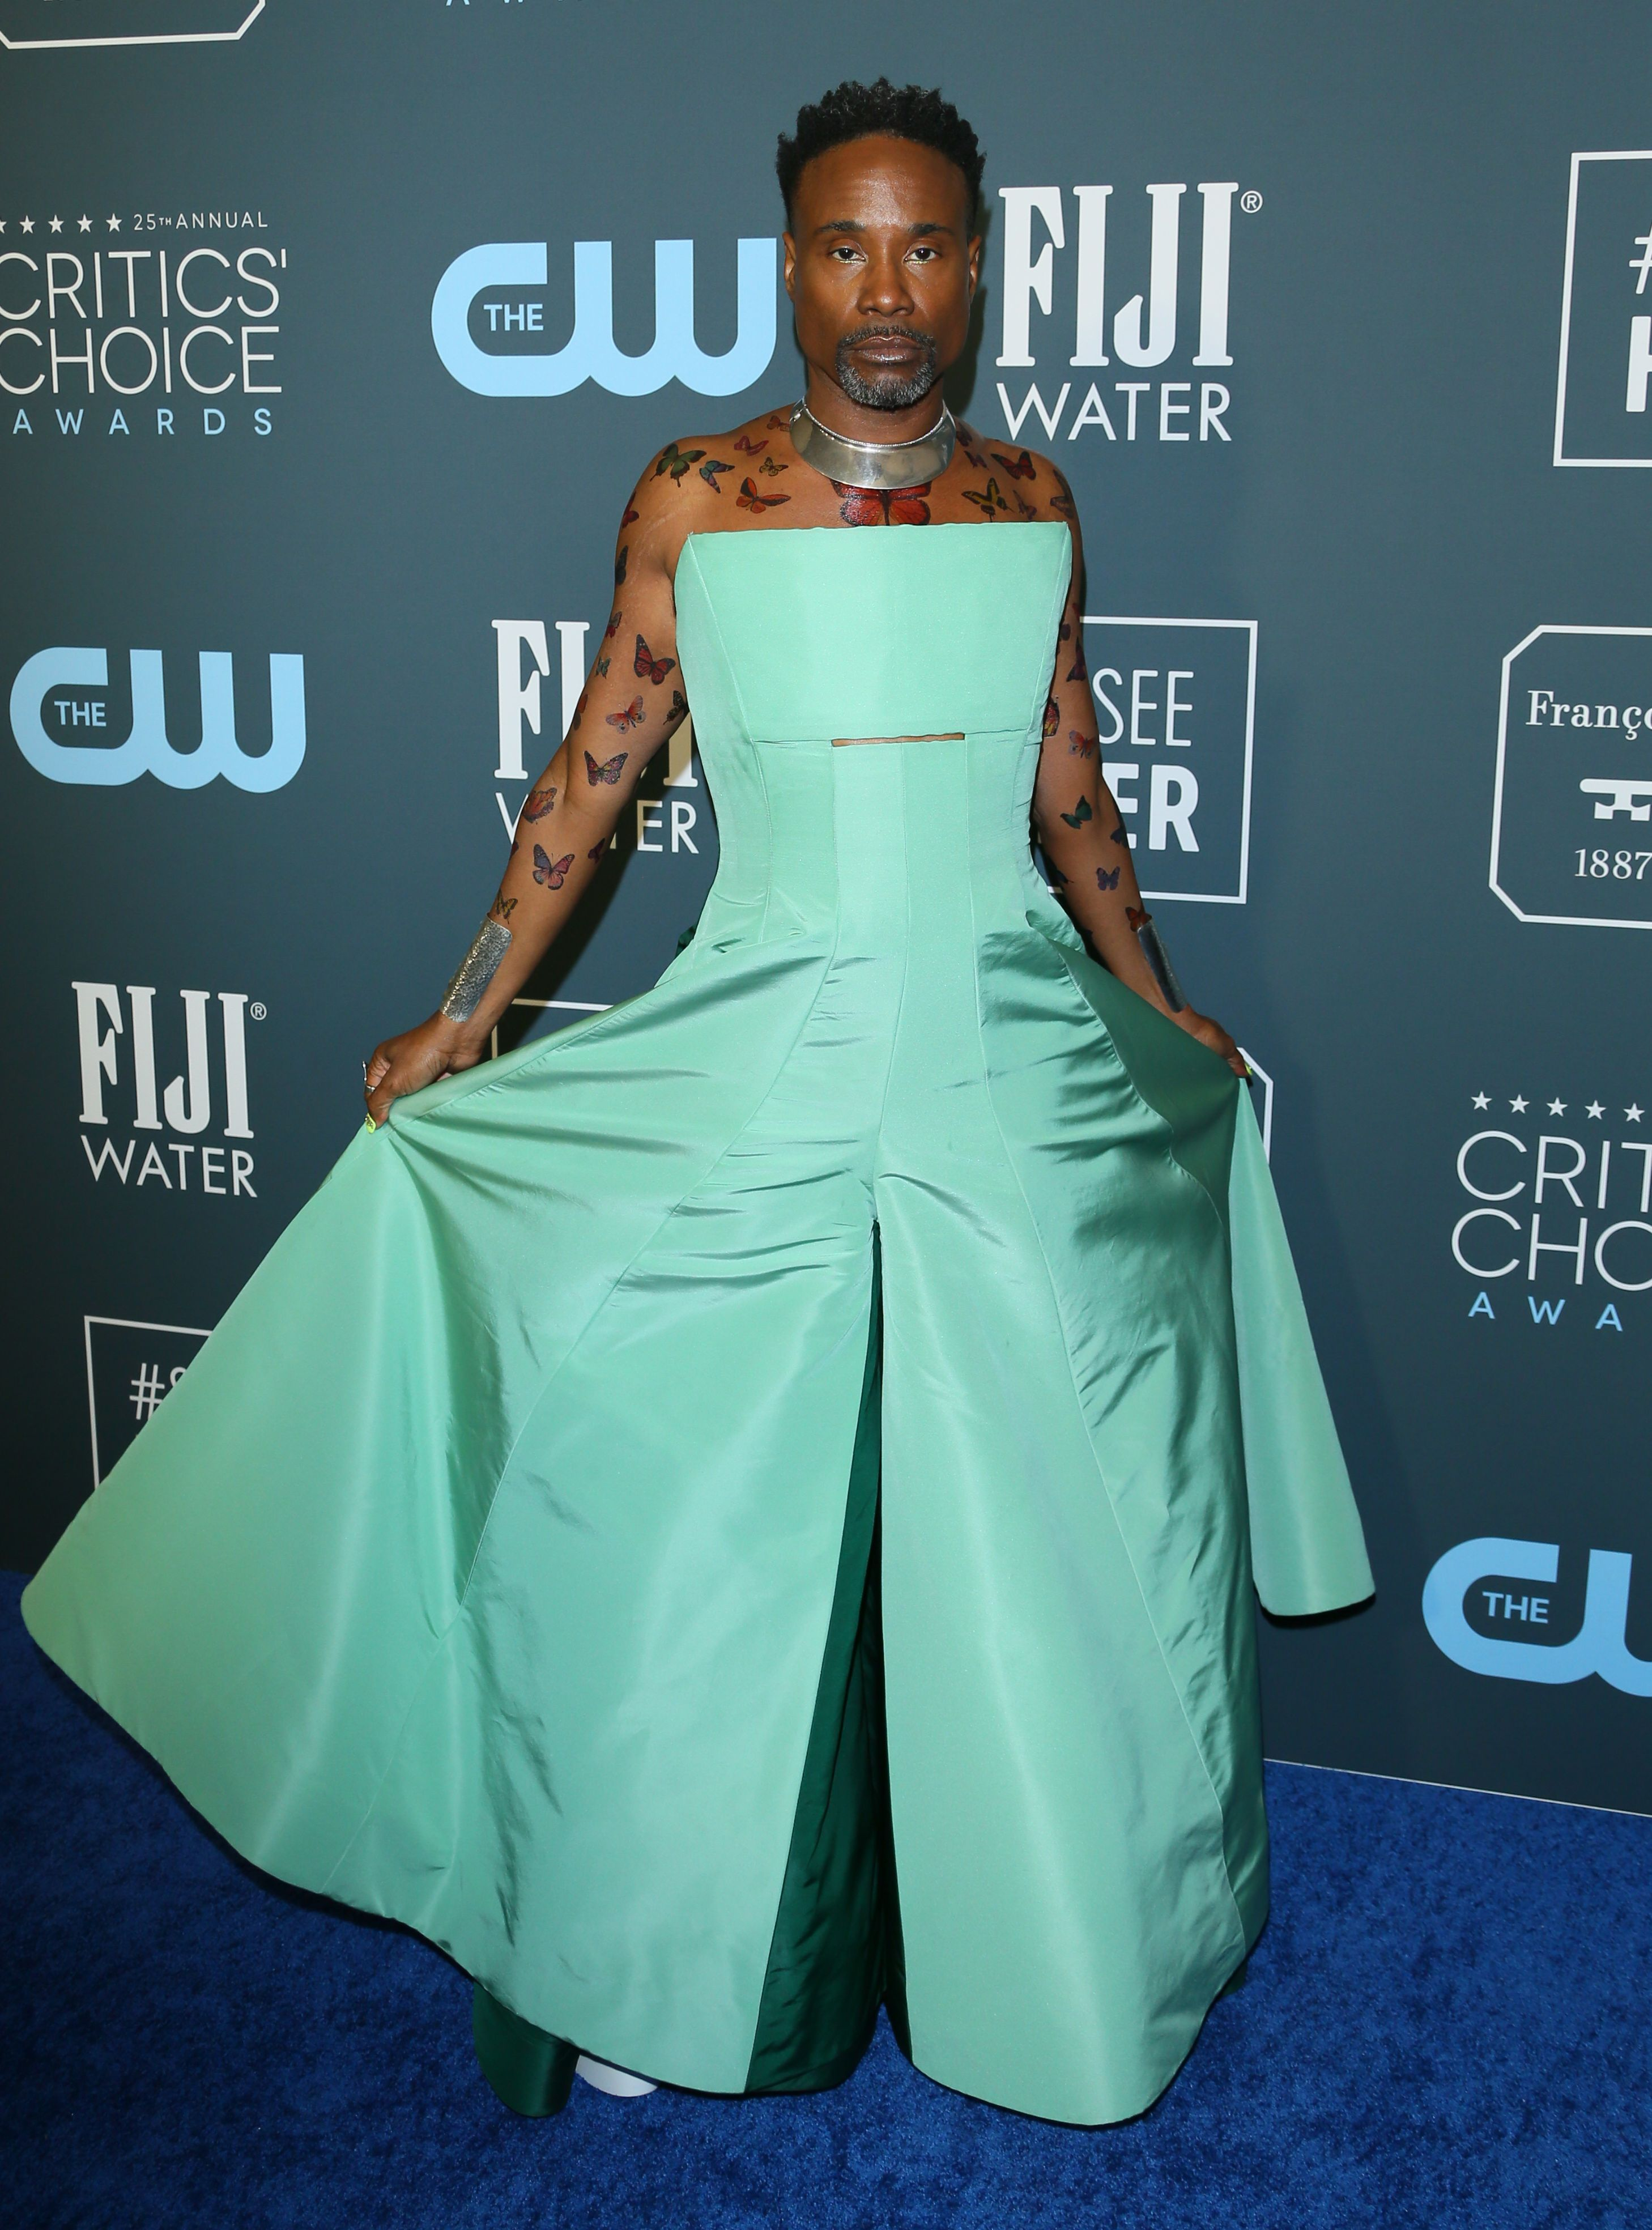 Billy Porter arrives for the 25th Annual Critics' Choice Awards at Barker Hangar Santa Monica airport on January 12, 2020 (Photo by JEAN-BAPTISTE LACROIX/AFP via Getty Images)